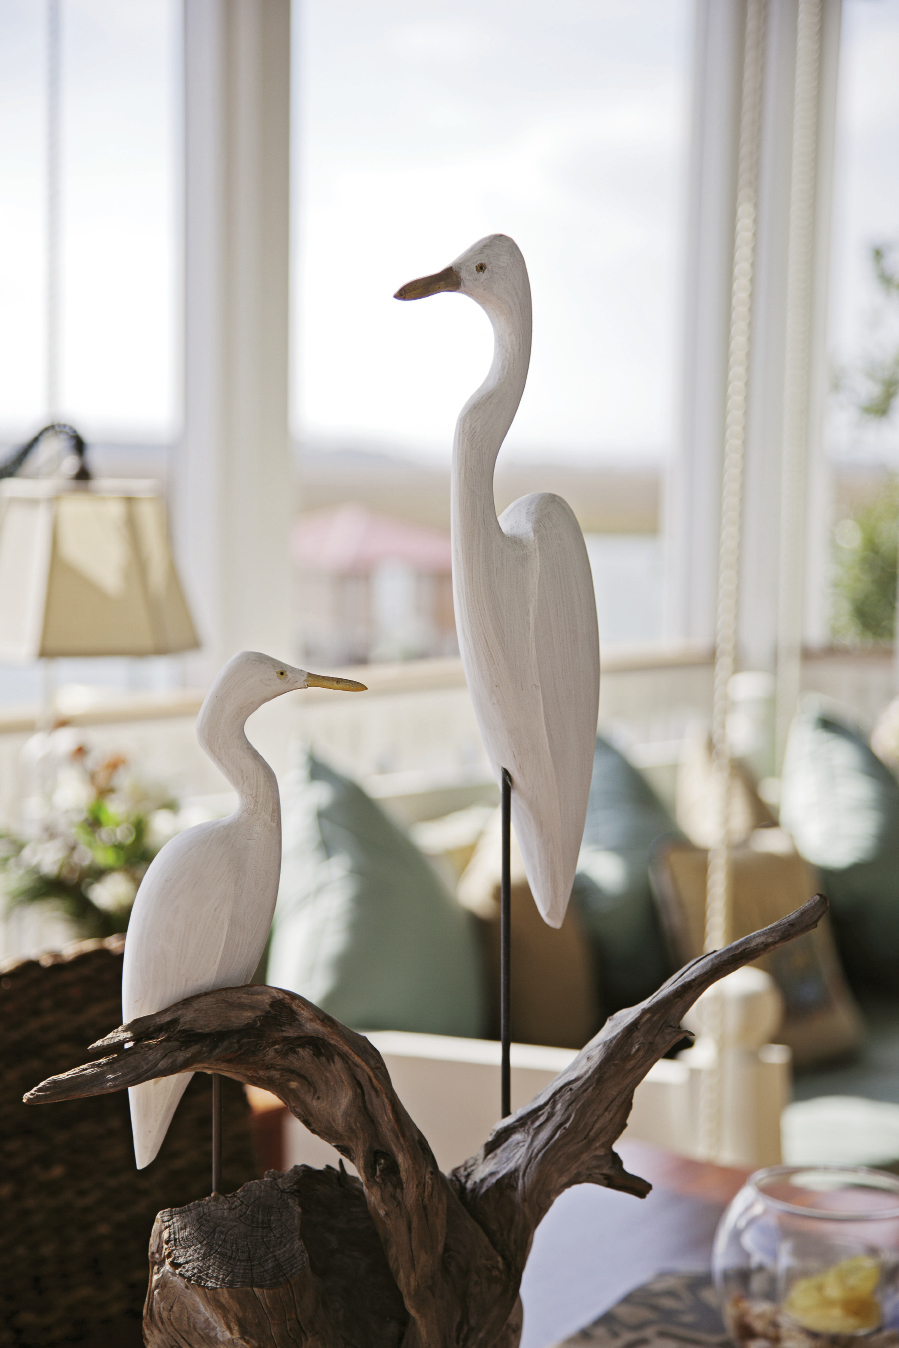 egret statues came from a boutique on Edisto Island